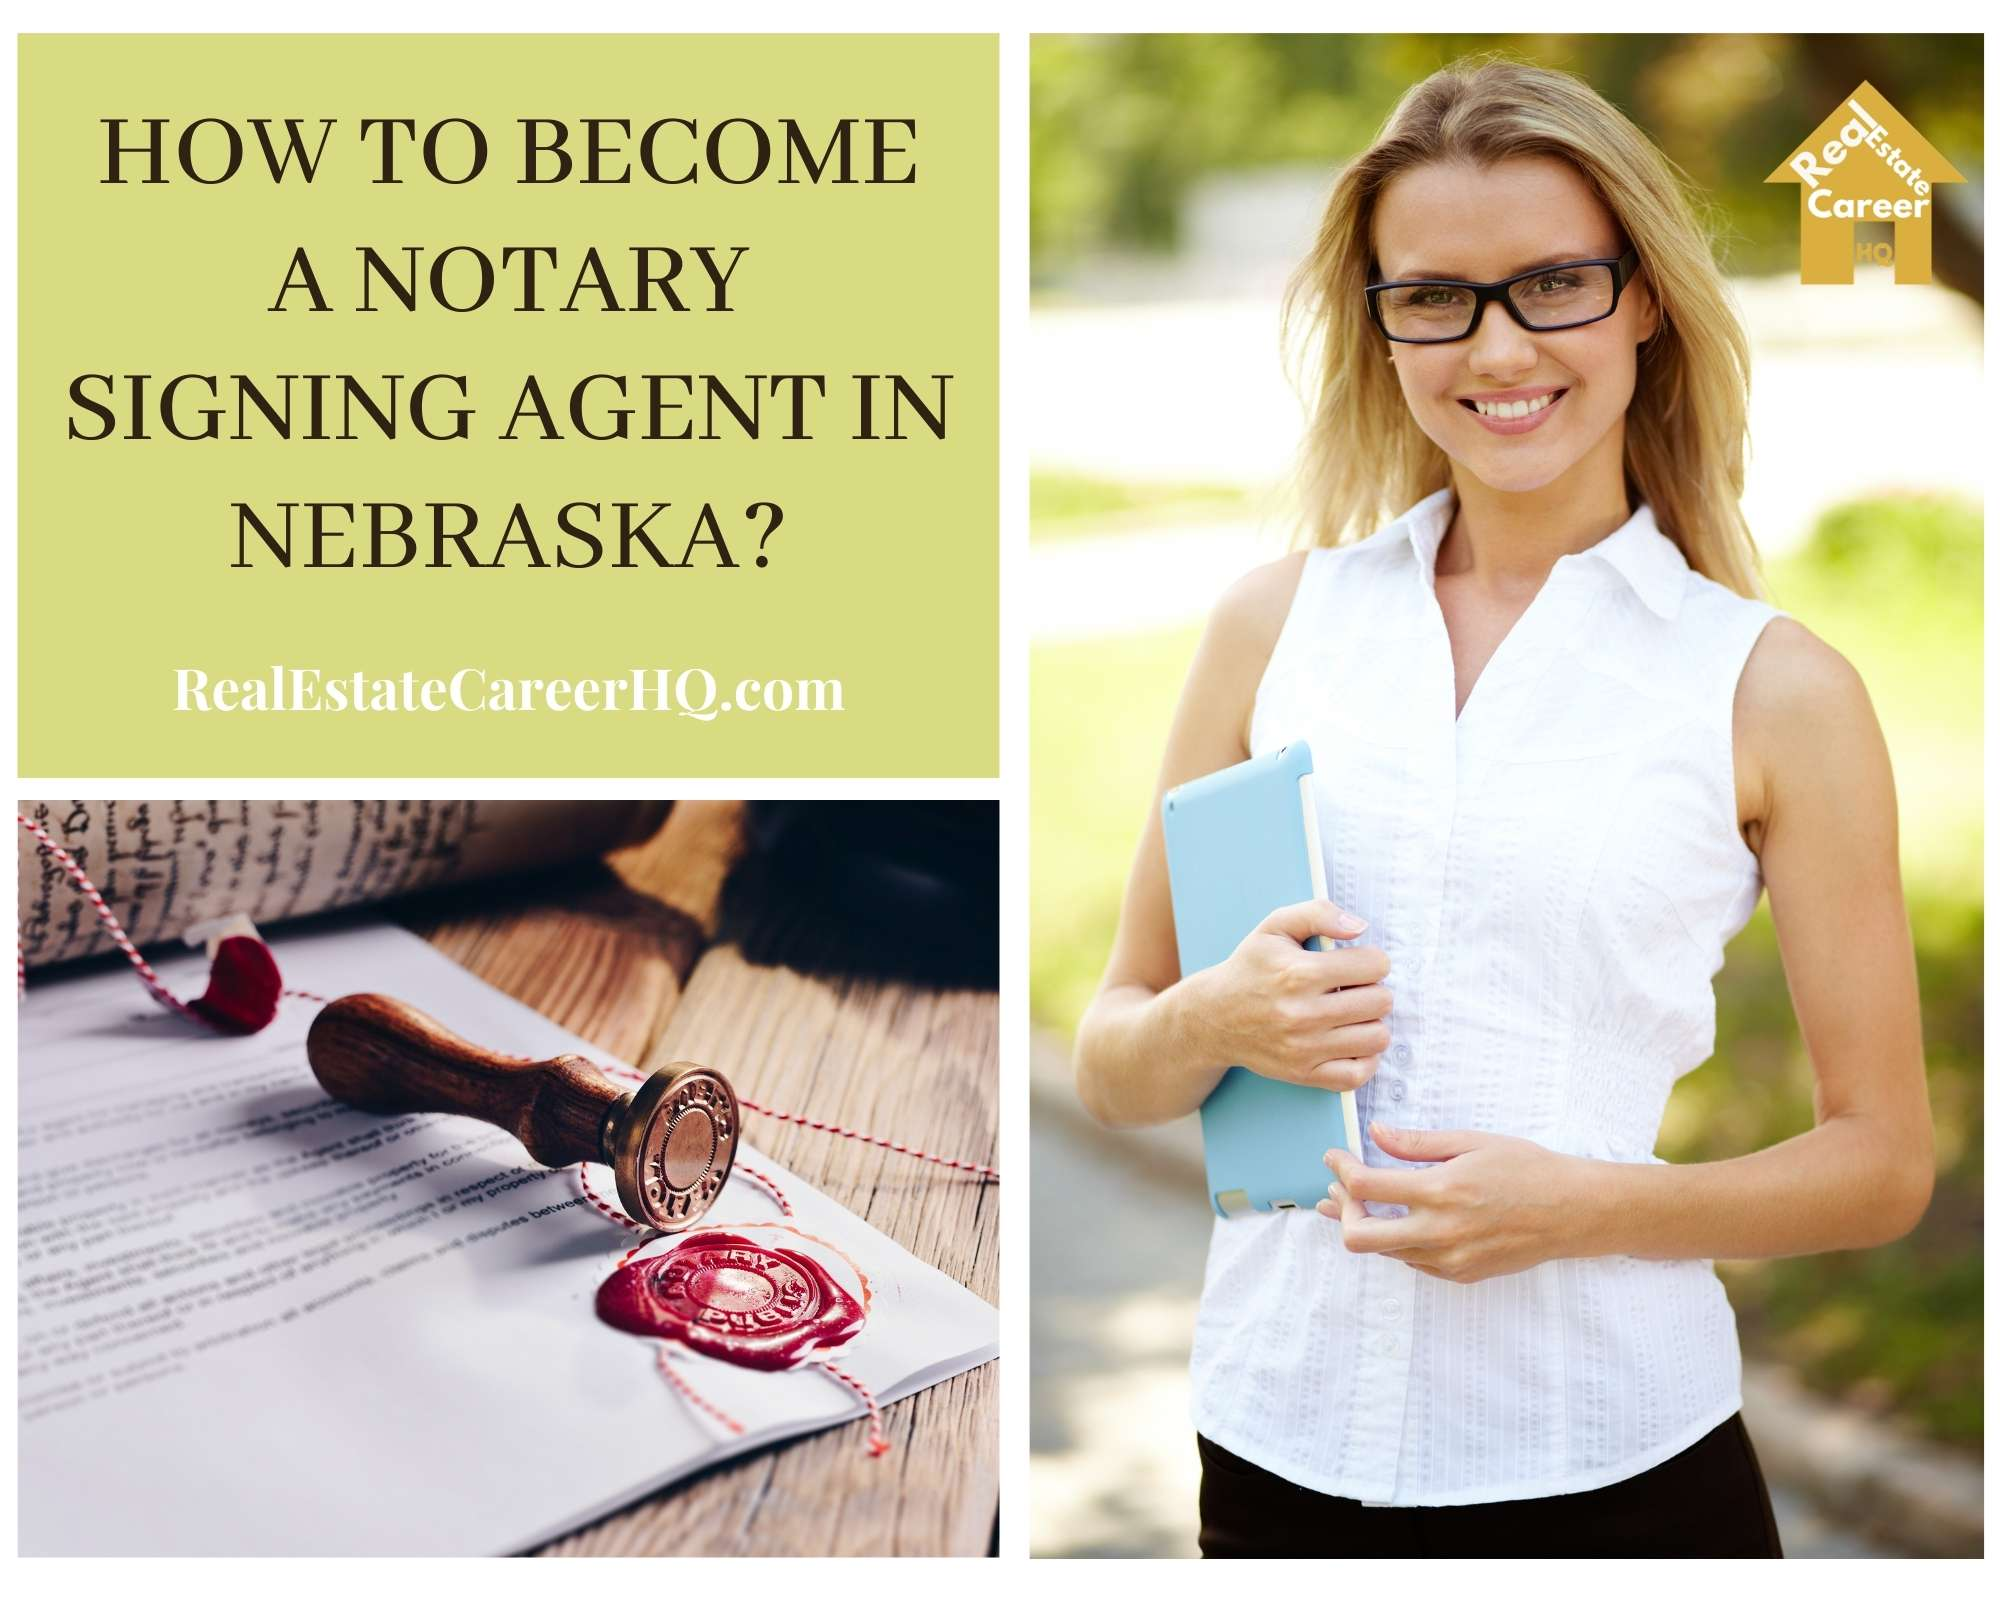 How to Become a Notary Signing Agent in Nebraska